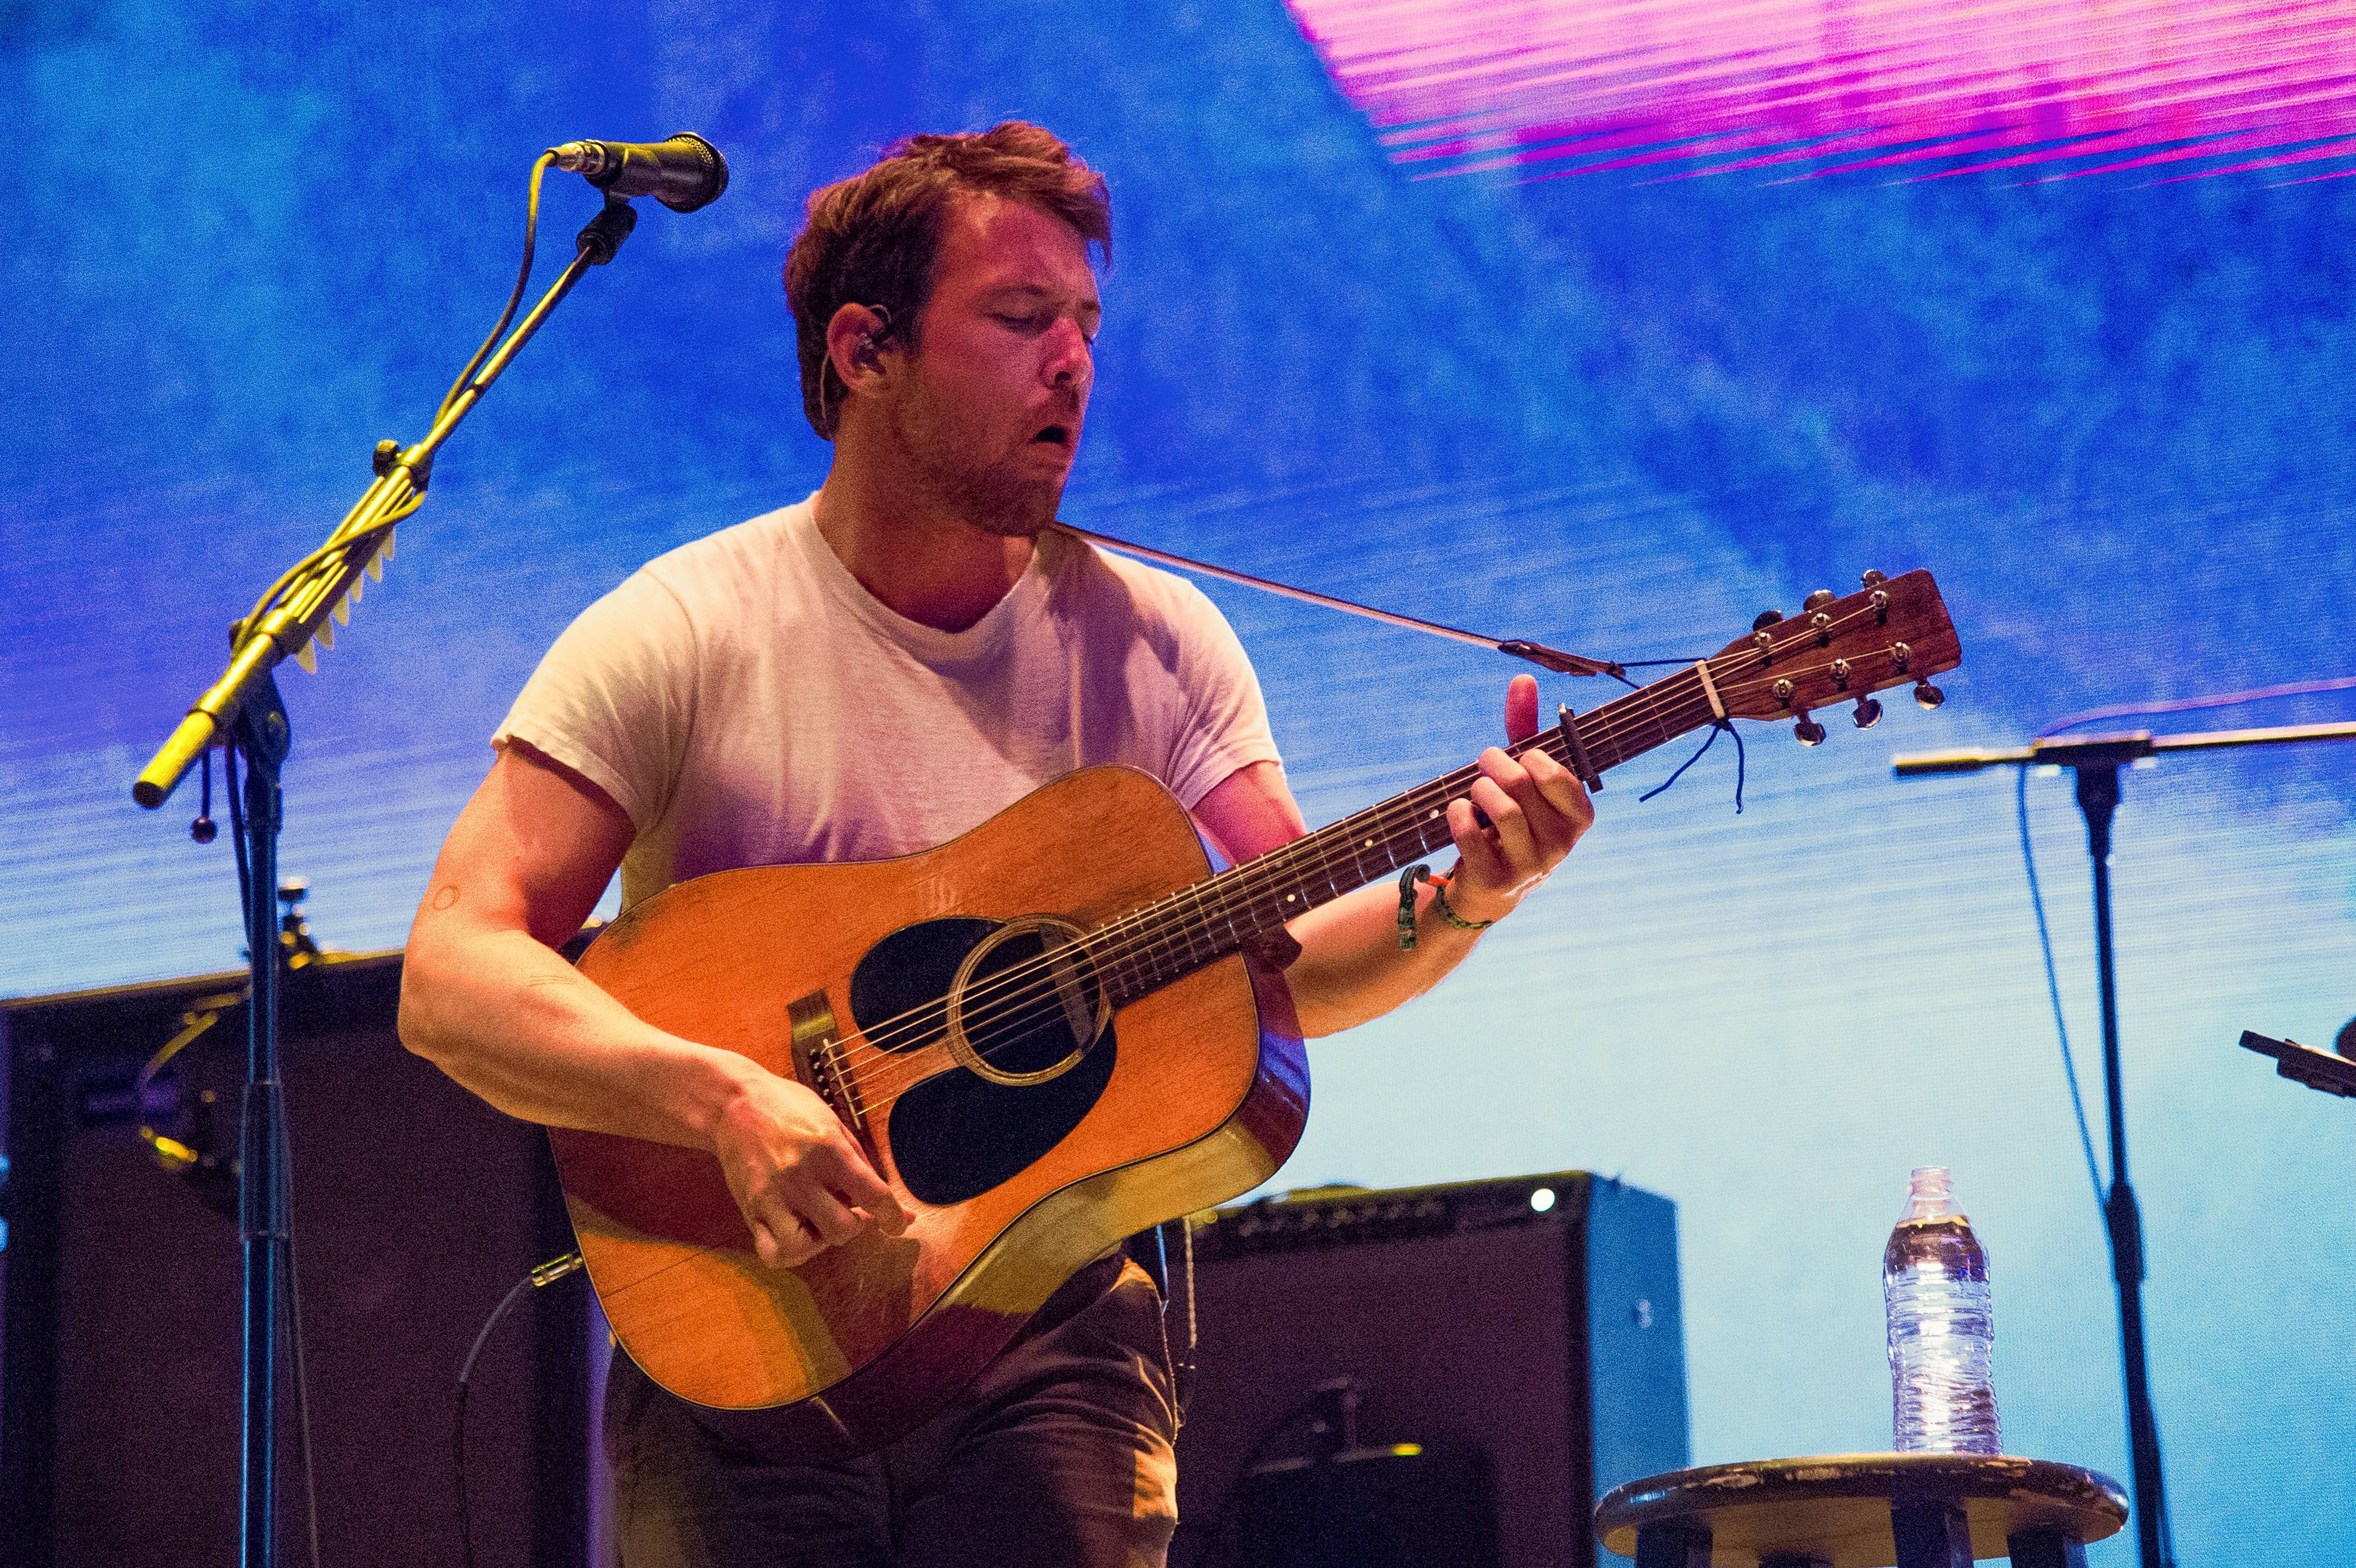 The Fleet Foxes headlines the second day of the Pitchfork Music Festival at Chicago's Union Park Saturday, July 21.